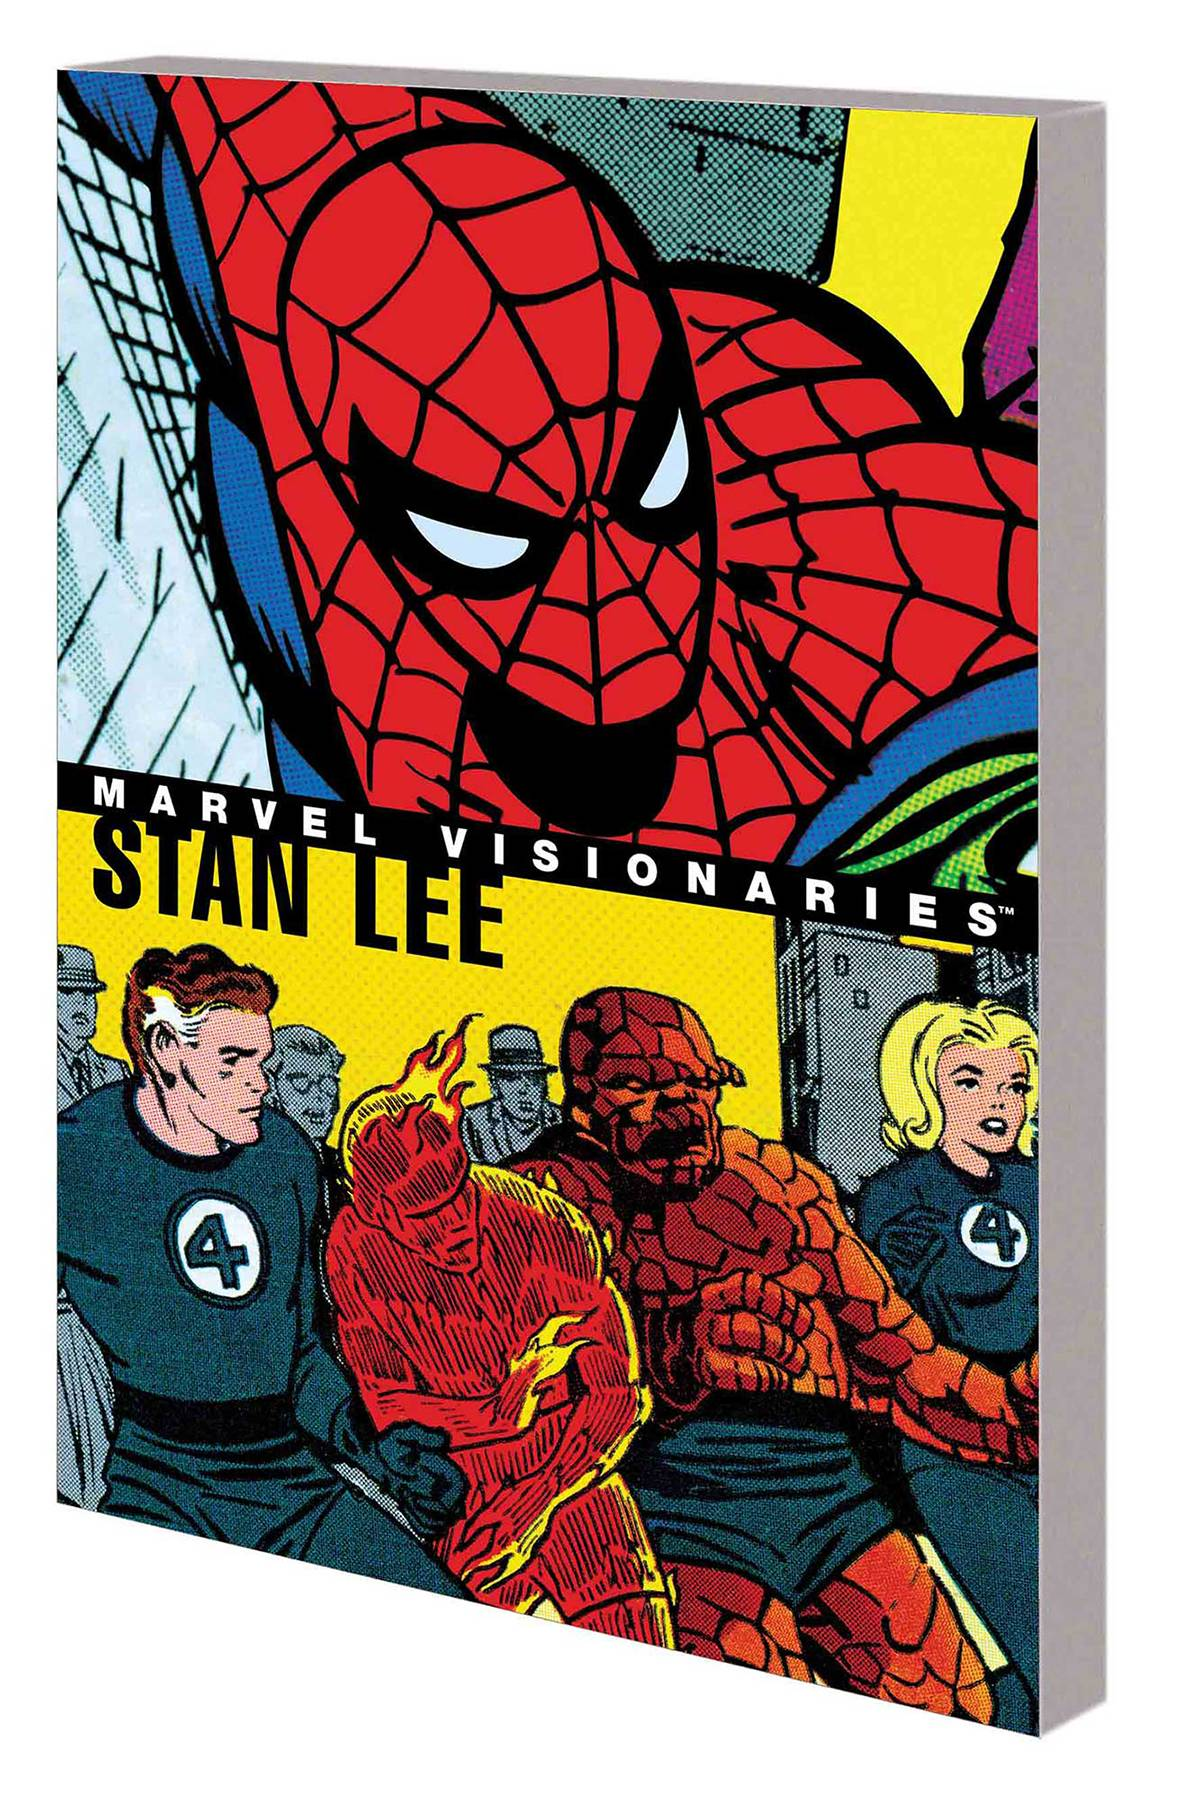 MARVEL VISIONARIES TP STAN LEE.jpg